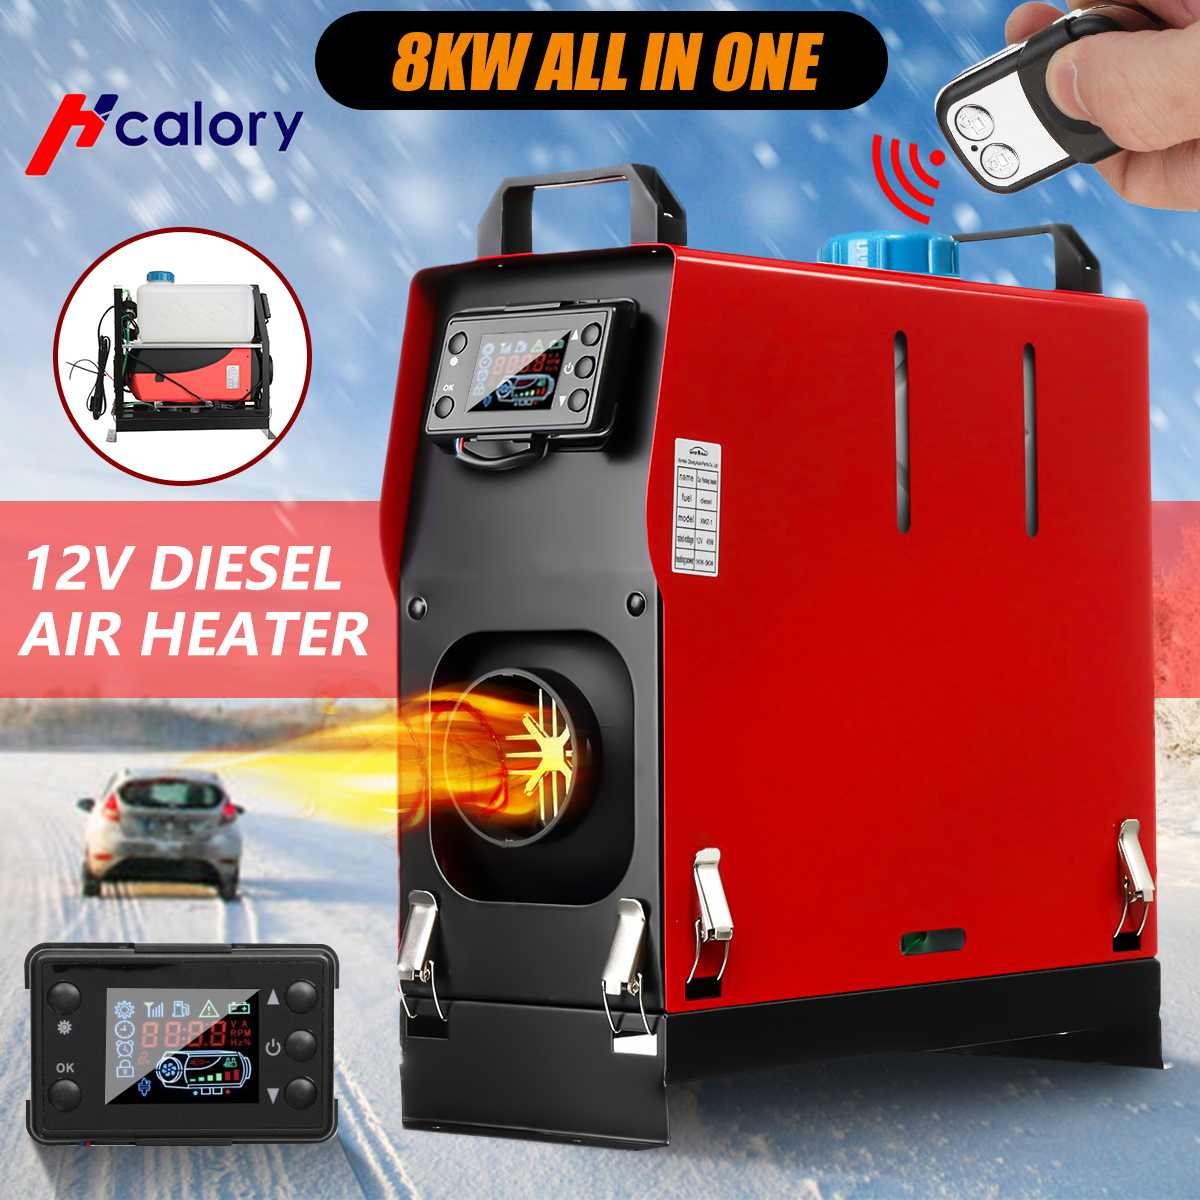 Hcalory Car Heater All In One Air Diesels Heater 8KW Adjustable One Hole For Webasto Trucks Motor Homes Boats Bus LCD Key Switch